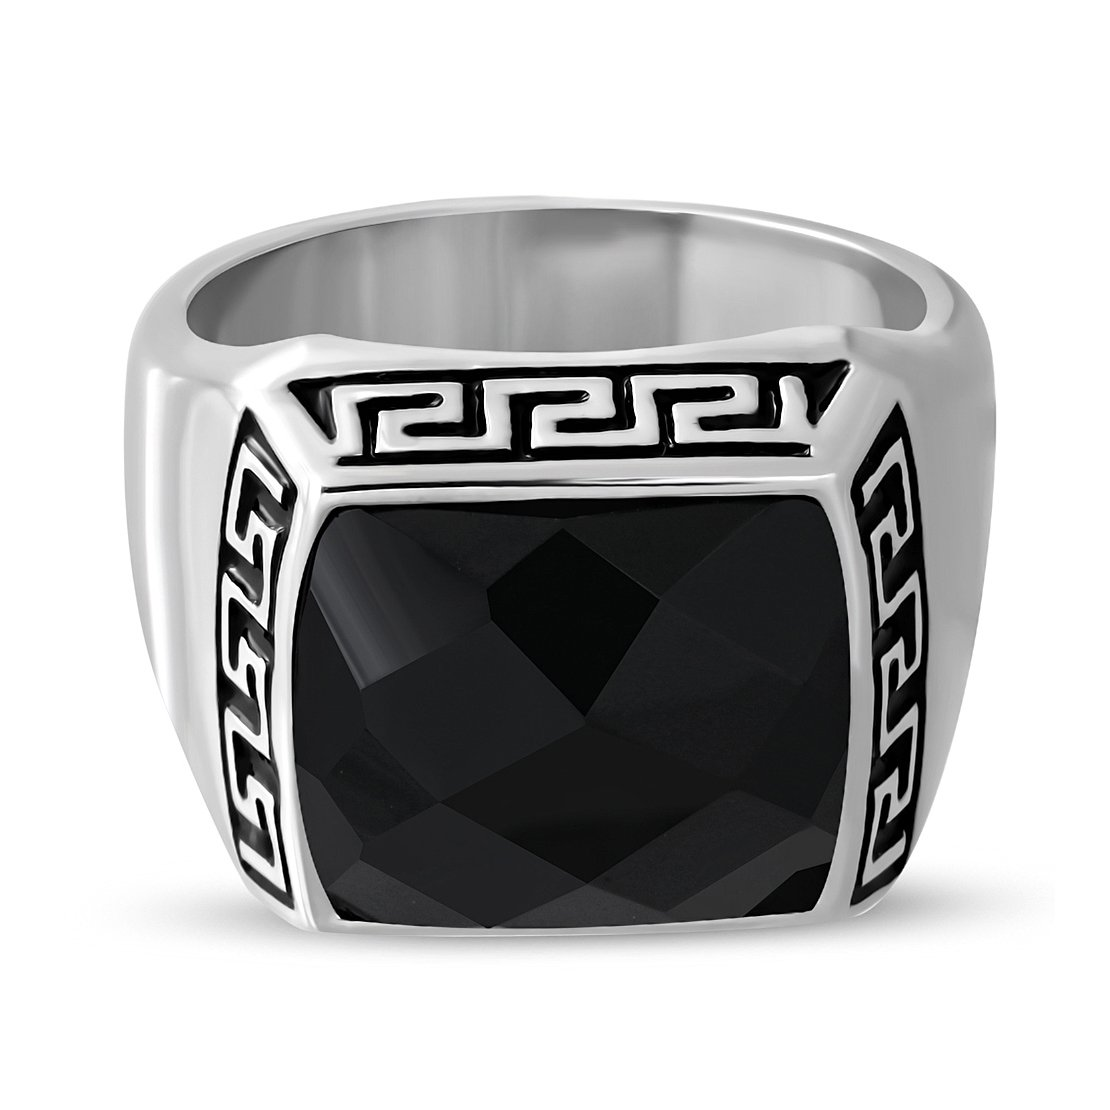 Stainless Steel 2 Color Greek Key Bezel-Set Checkerboard-Cut Square Signet Biker Ring with Faceted Jet Black CZ